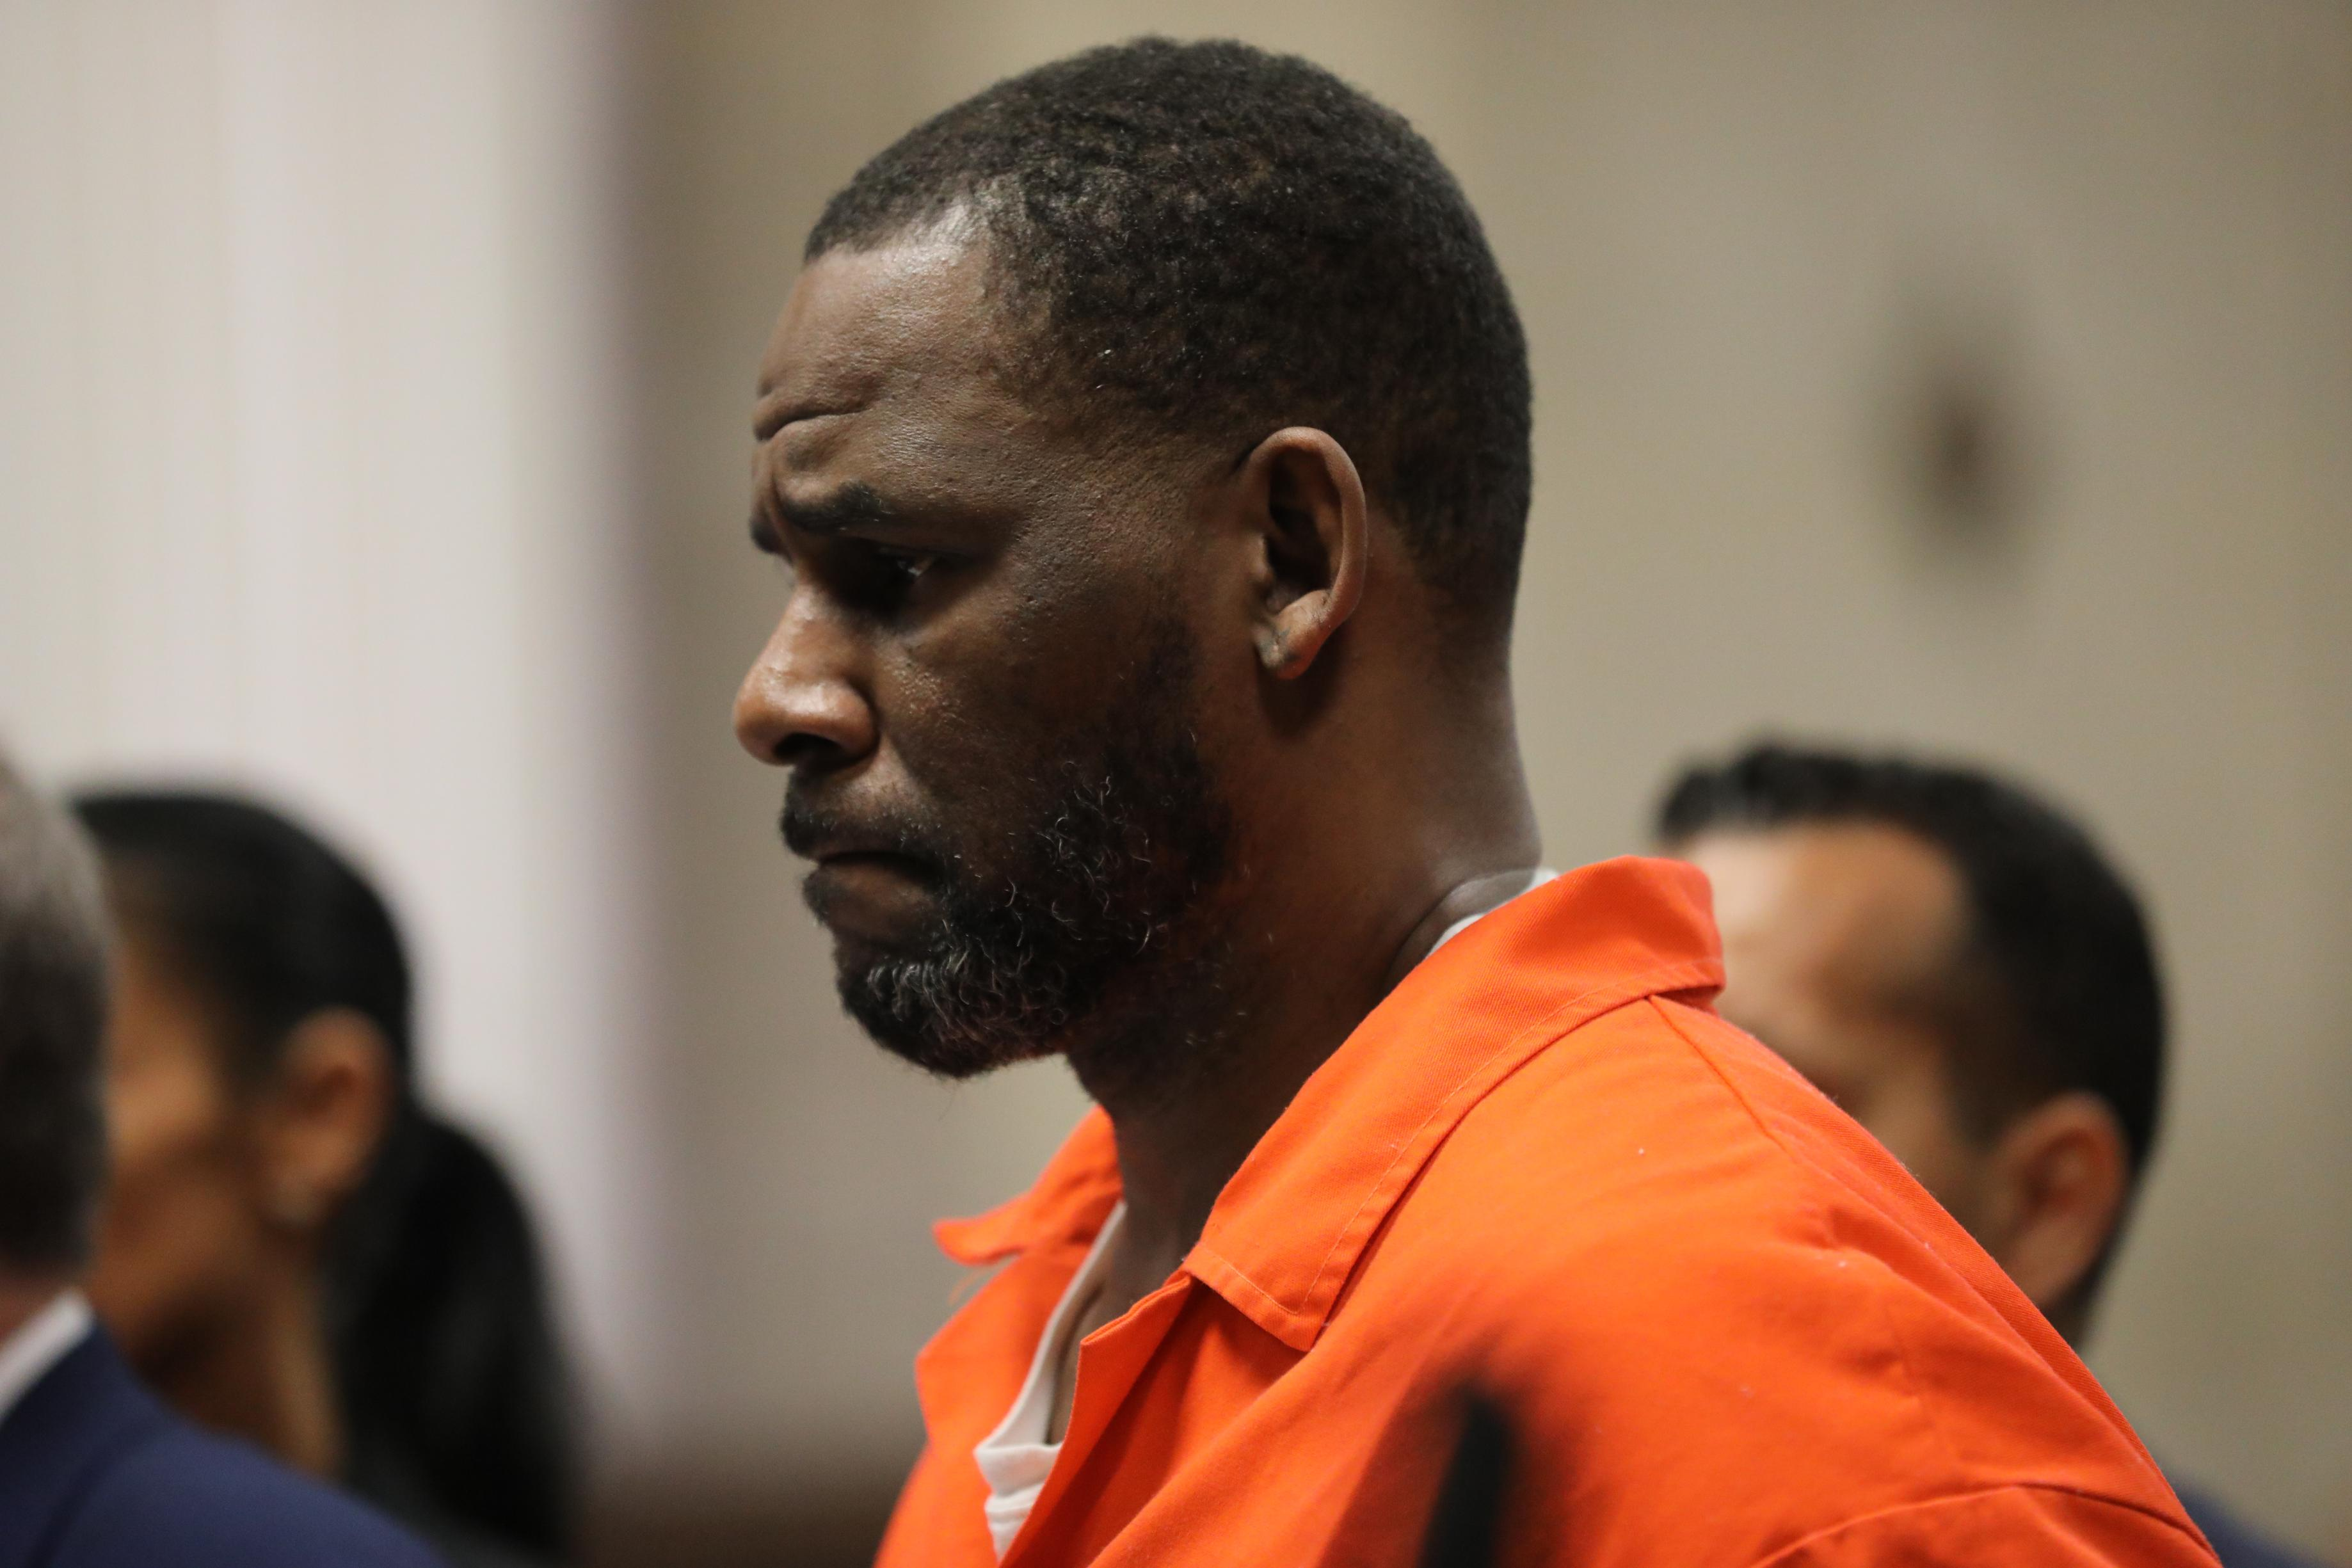 3 men believed to be connected to R. Kelly charged with trying to harass, threaten and bribe alleged victims